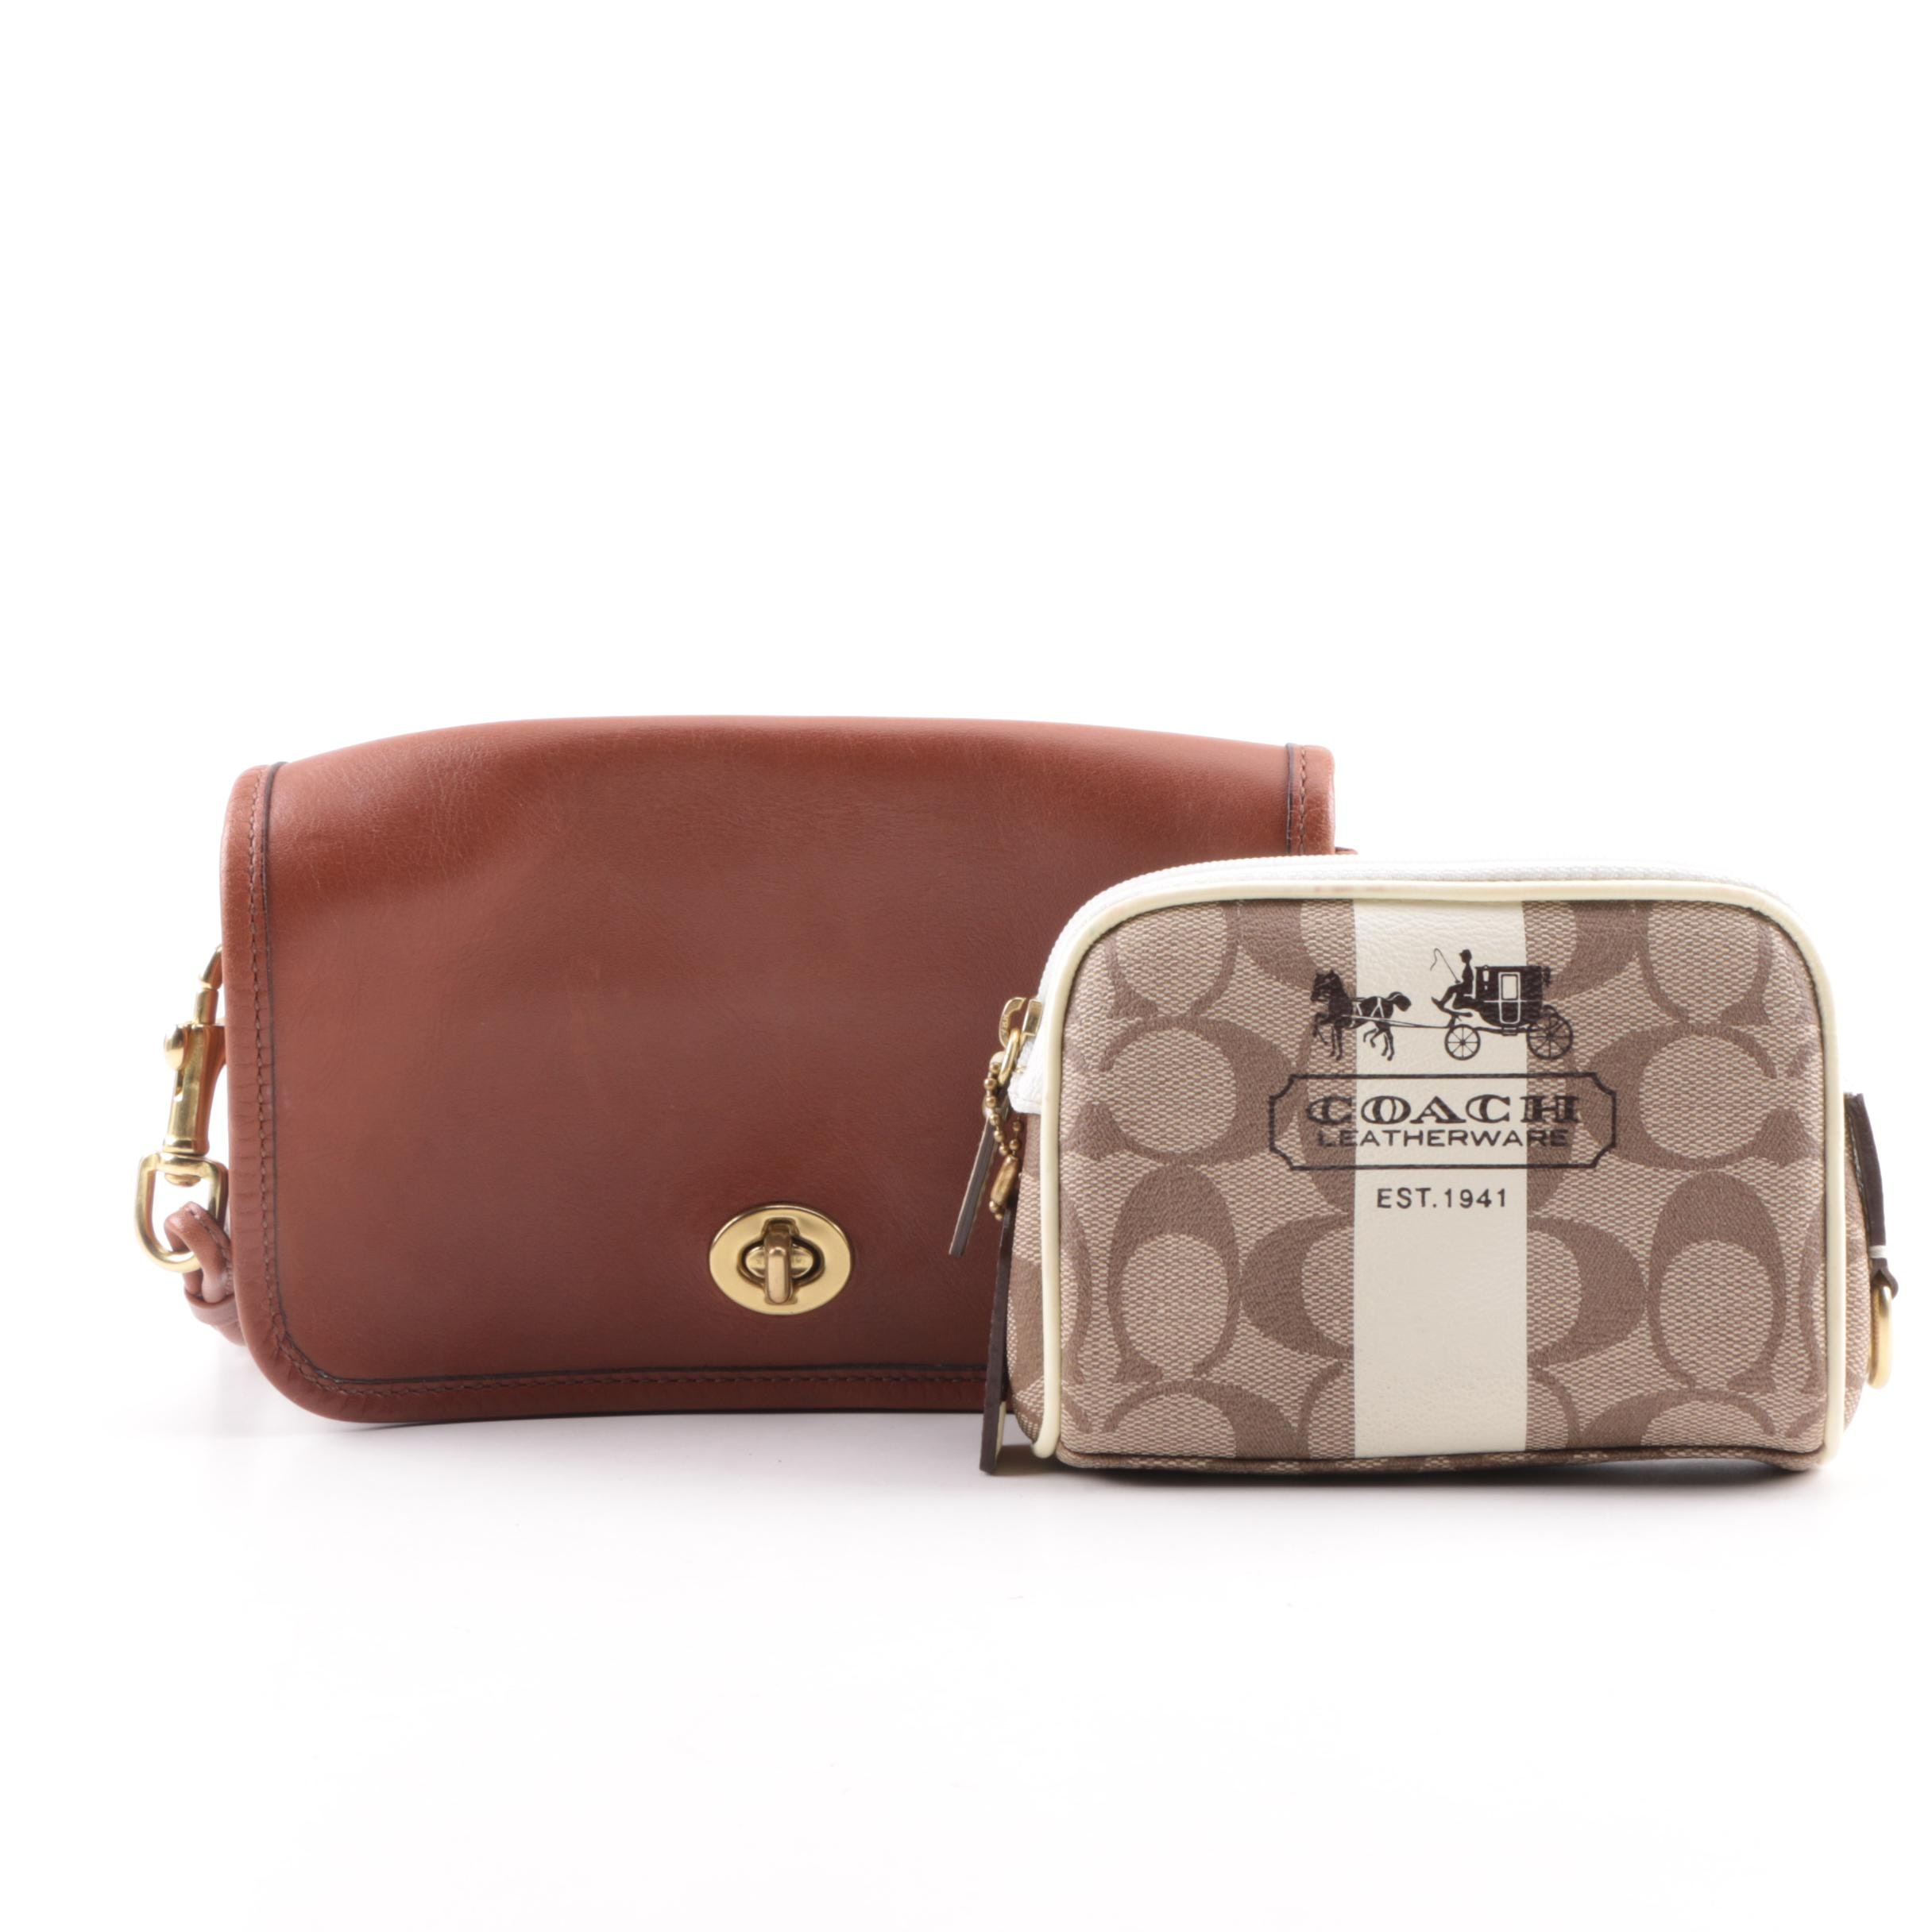 Coach Leather Crossbody Bag and Coated Canvas Pouch